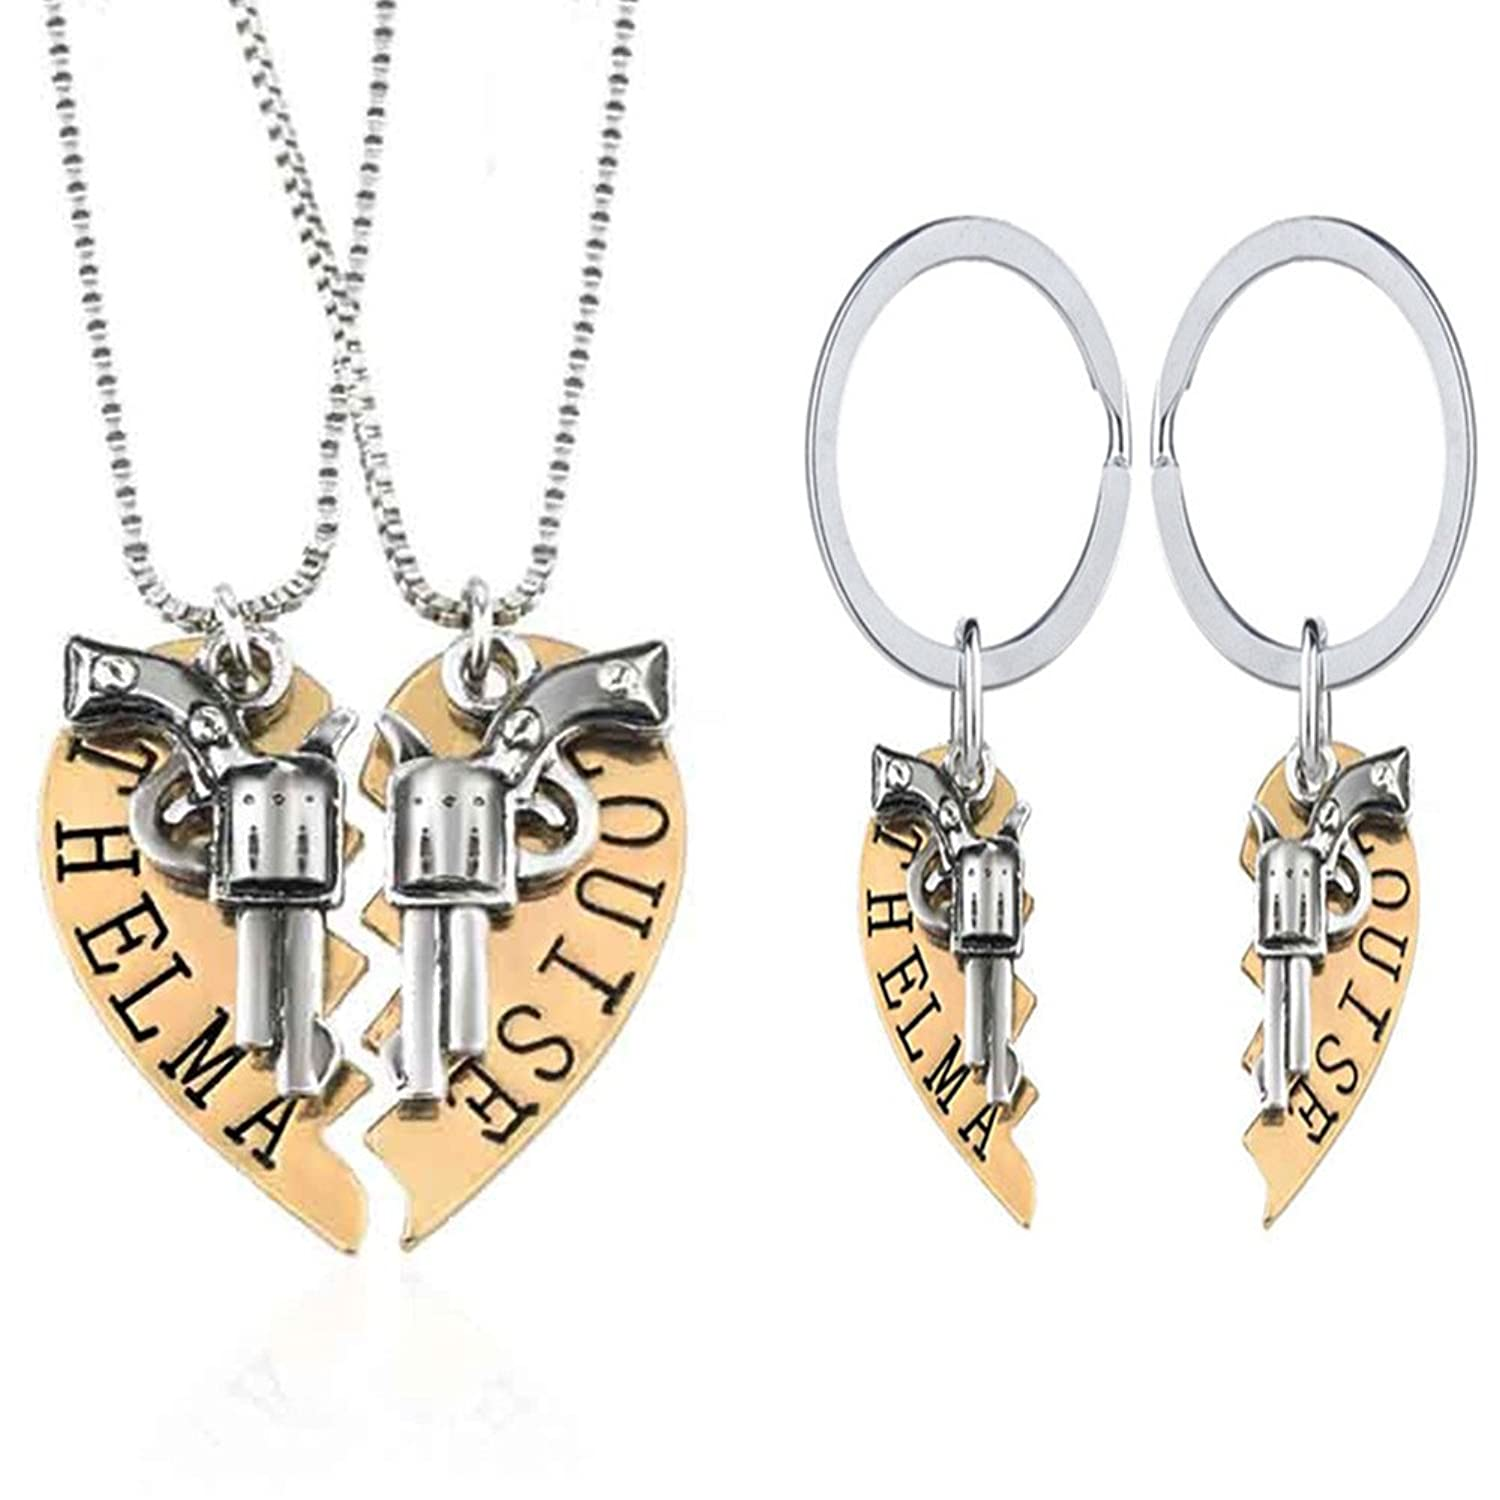 1 Set Thelma and Louise Revolver Charm Keychain Broken Heart-shaped Puzzle BFF Necklace